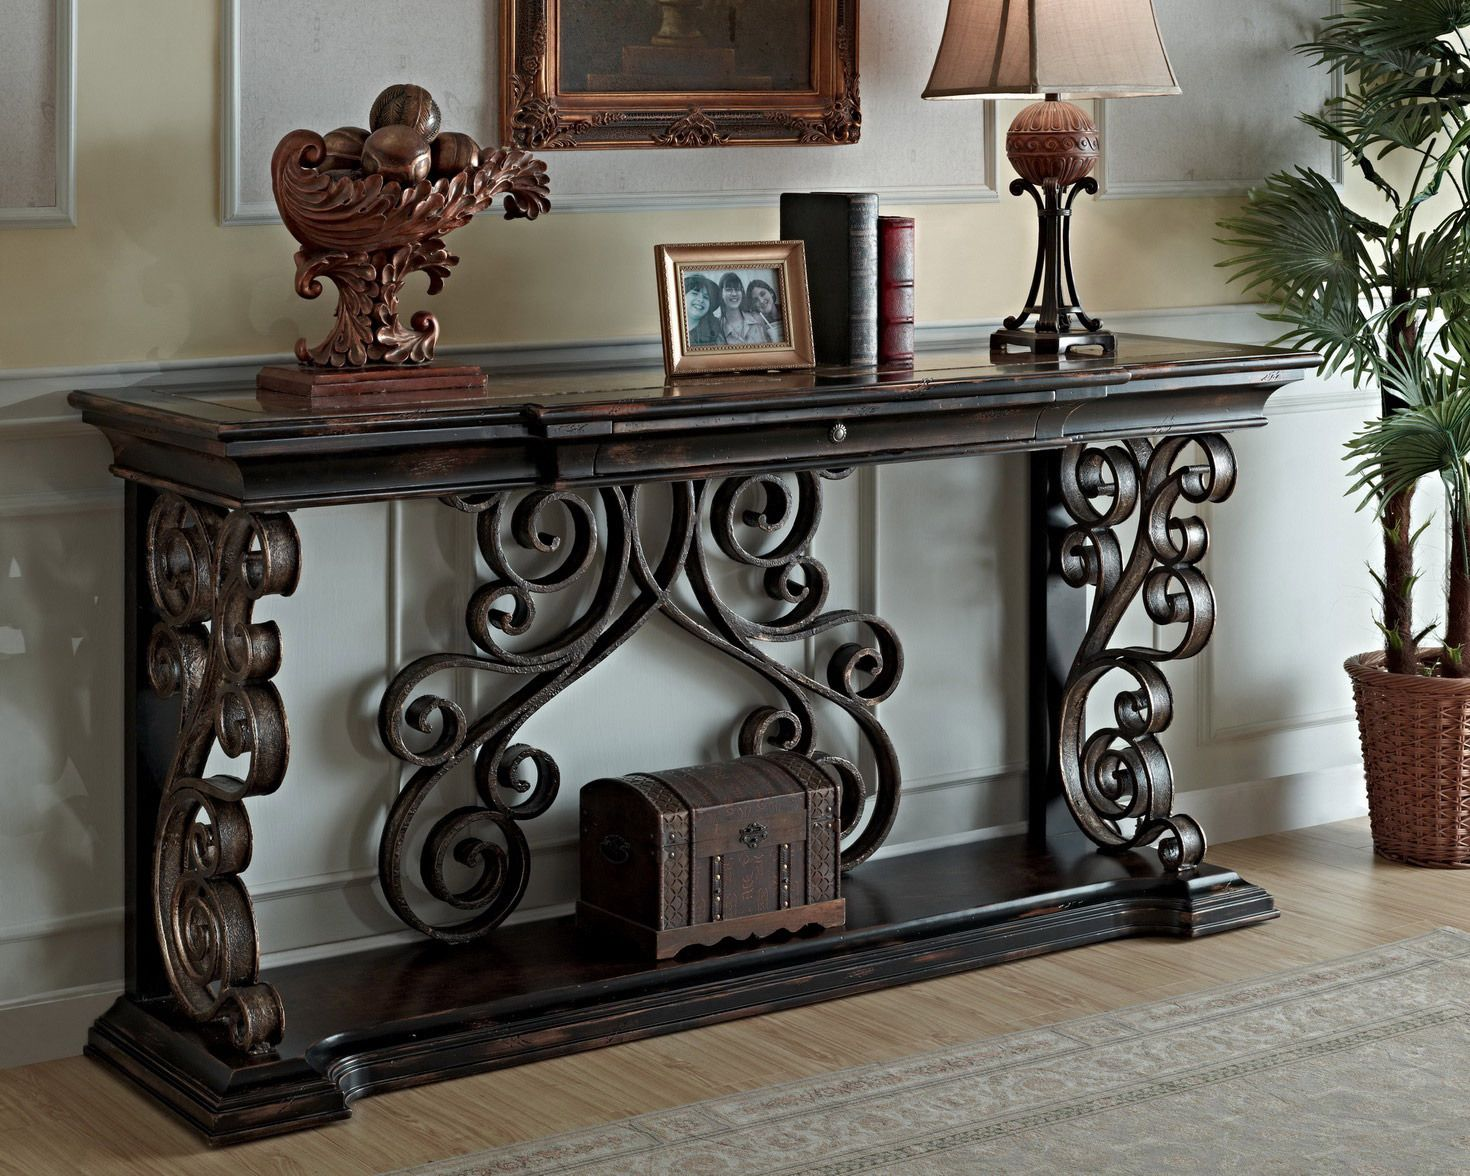 Phenomenal Sorrento Console Table In Black By Eastern Legends Furniture Gmtry Best Dining Table And Chair Ideas Images Gmtryco